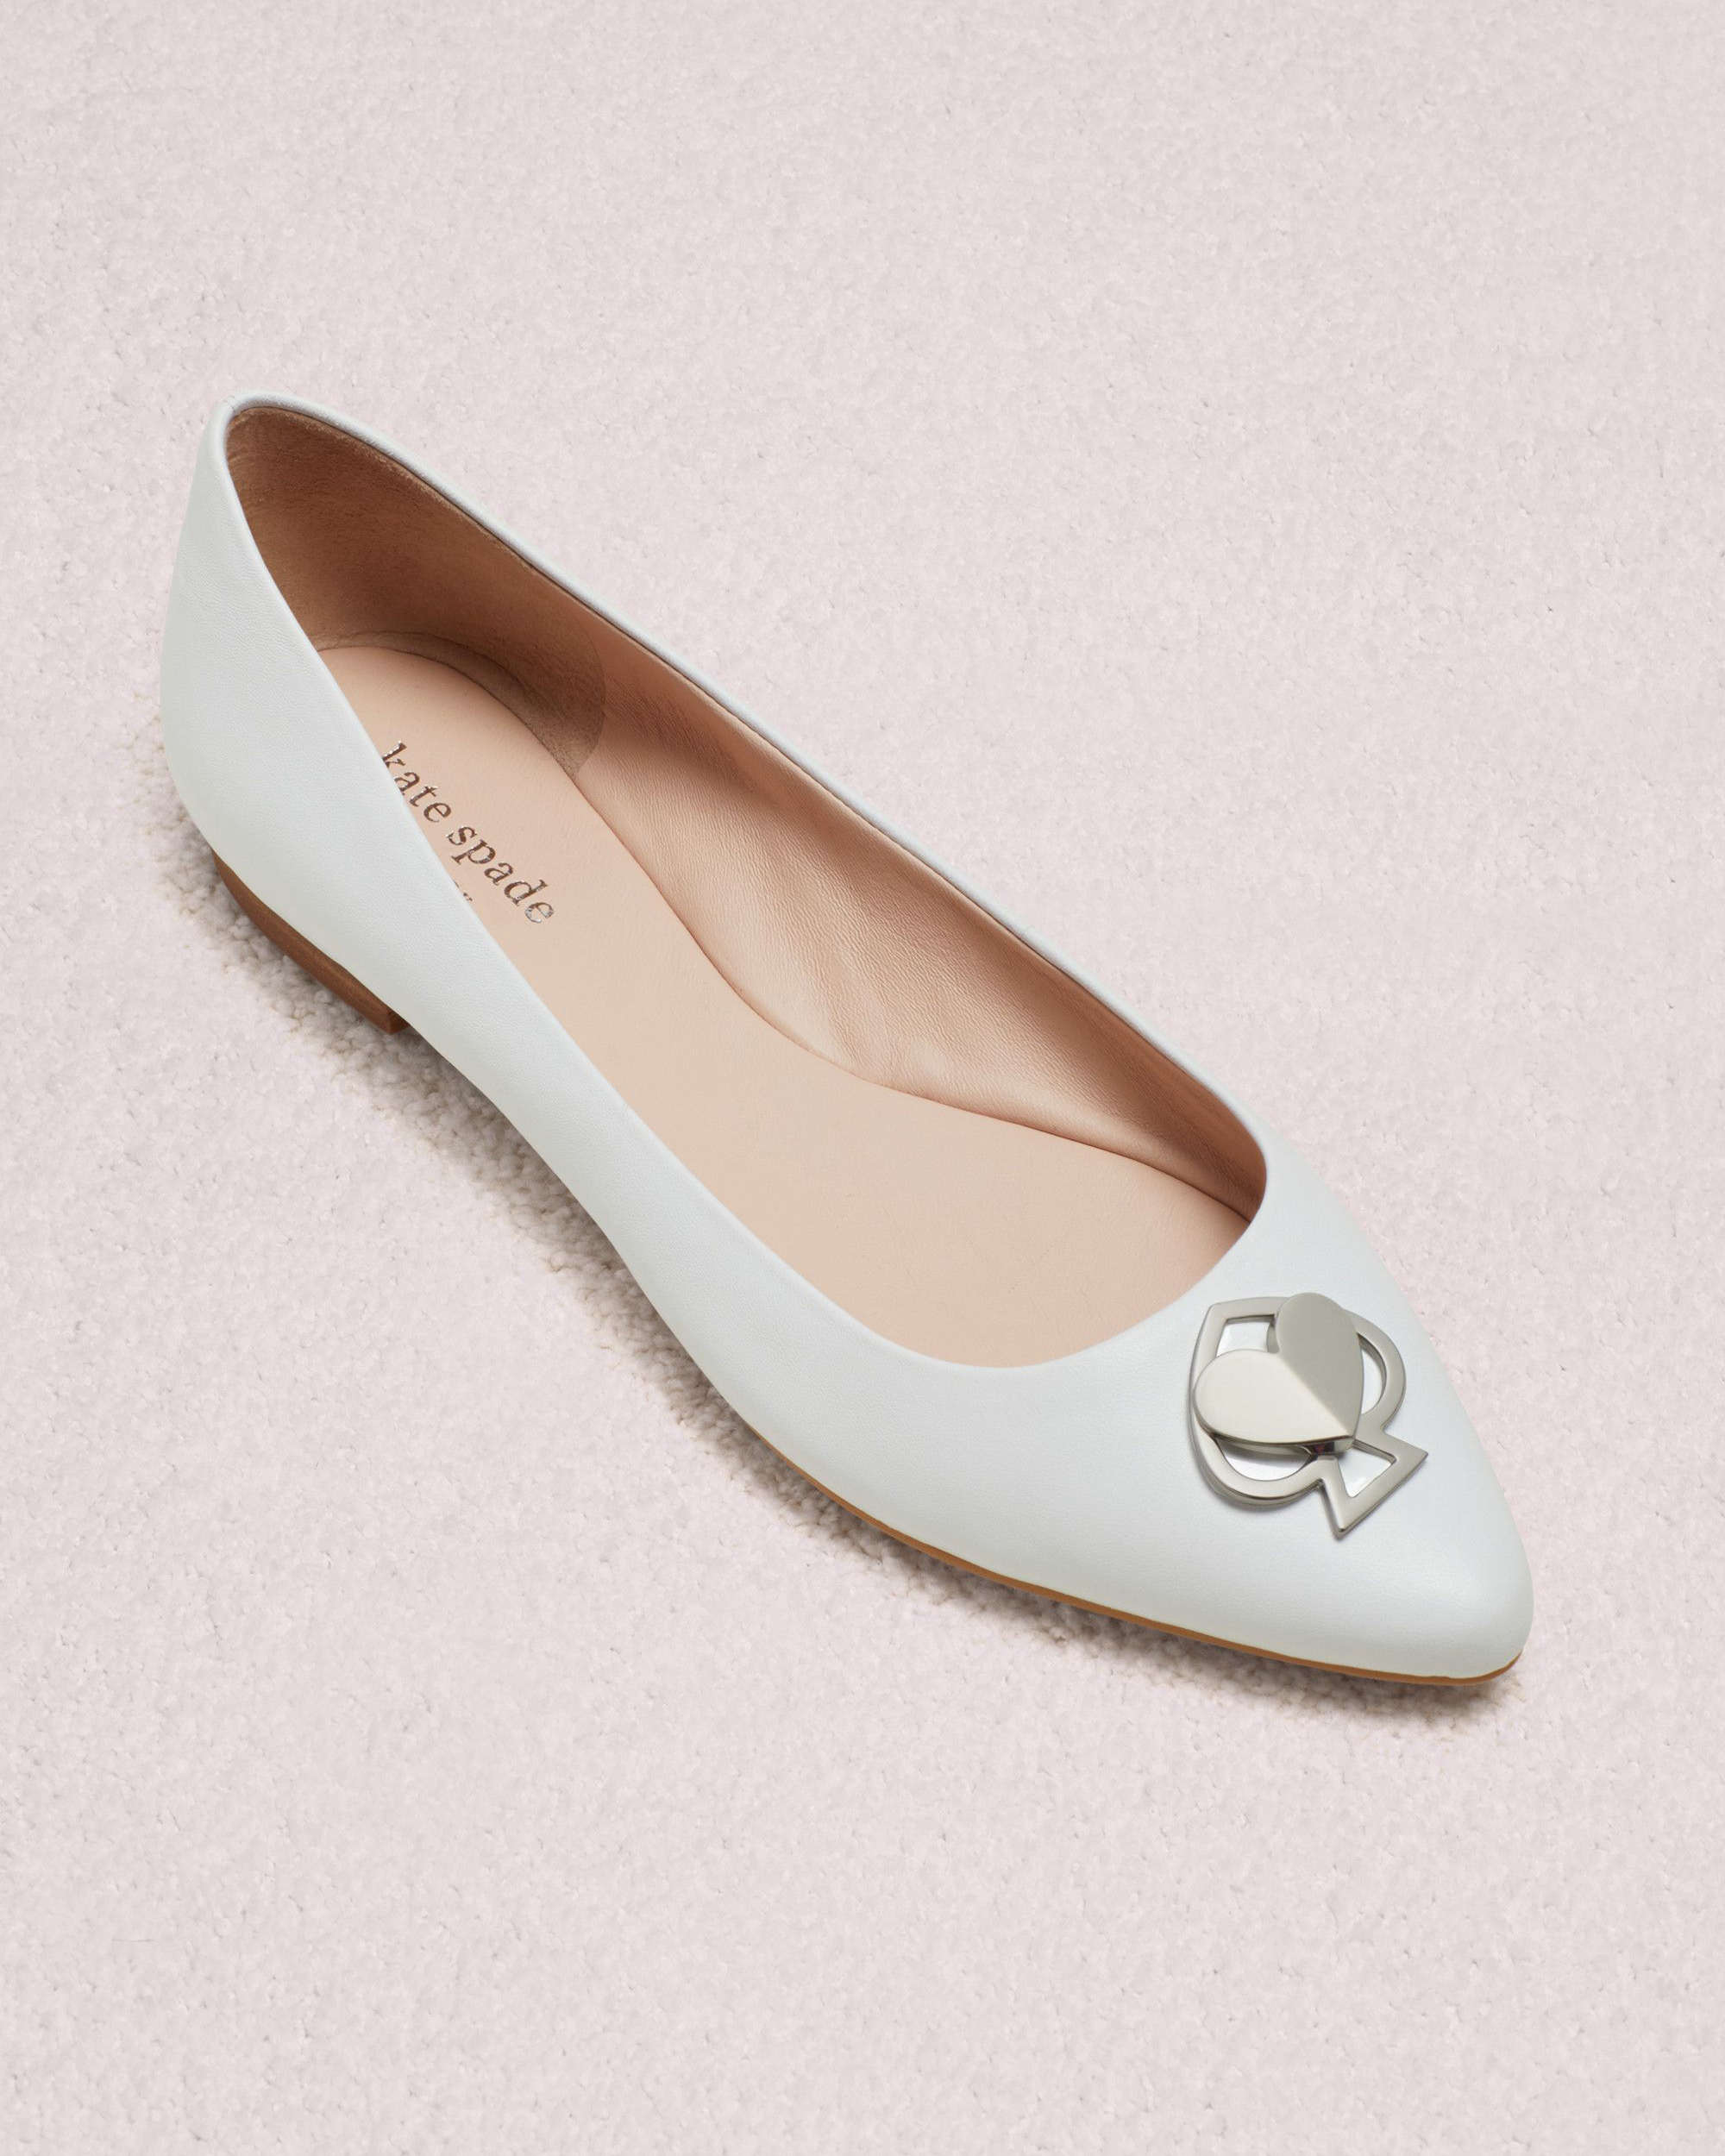 outdoor wedding shoes white flats with spade emblem